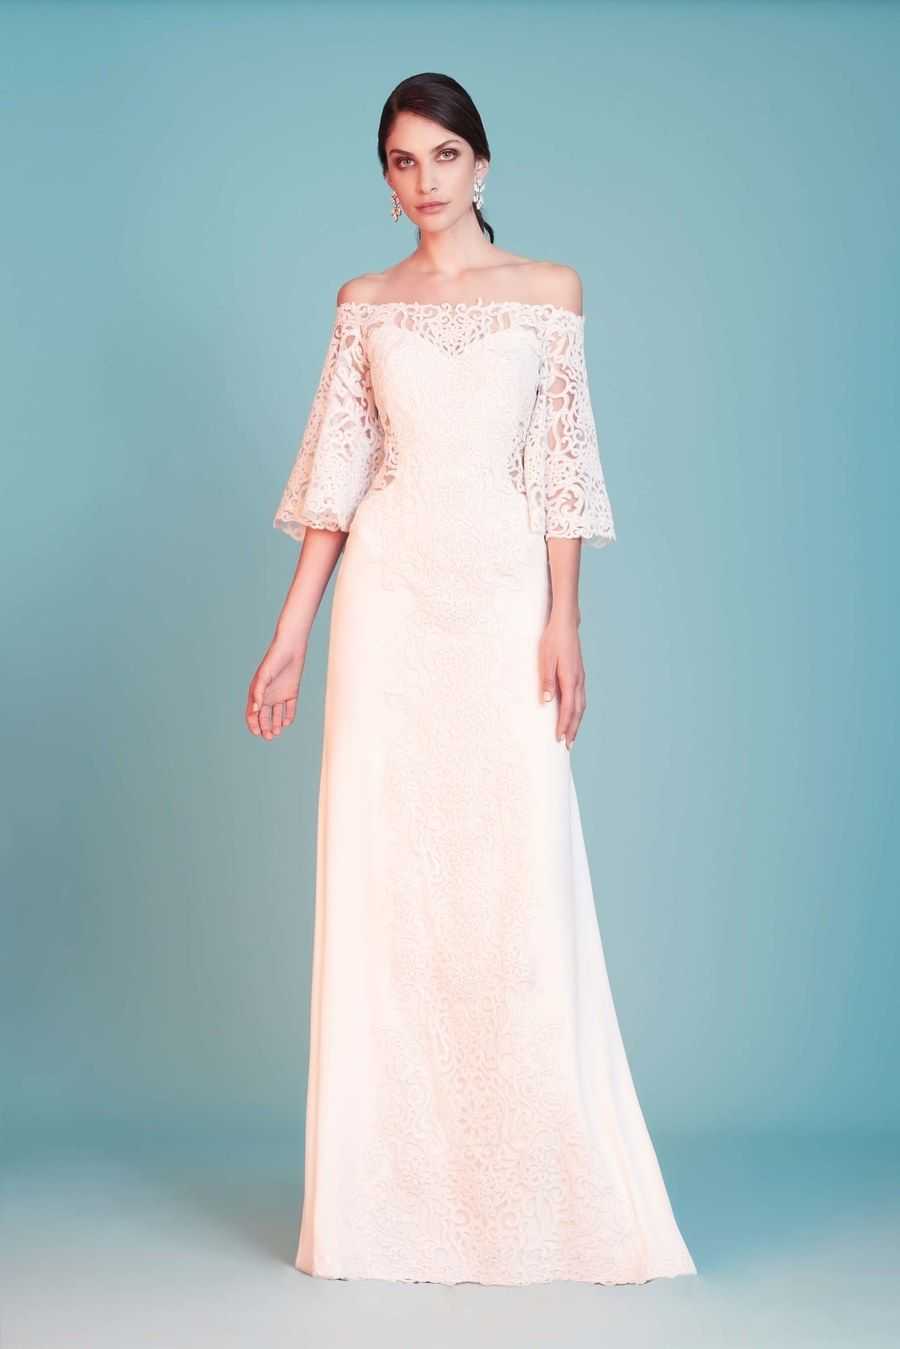 Tadashi Shoji Bridal Spring 2018 Collection Runway Looks Beauty Models And Reviews Fashion Dresses Online Wedding Dresses Fashion